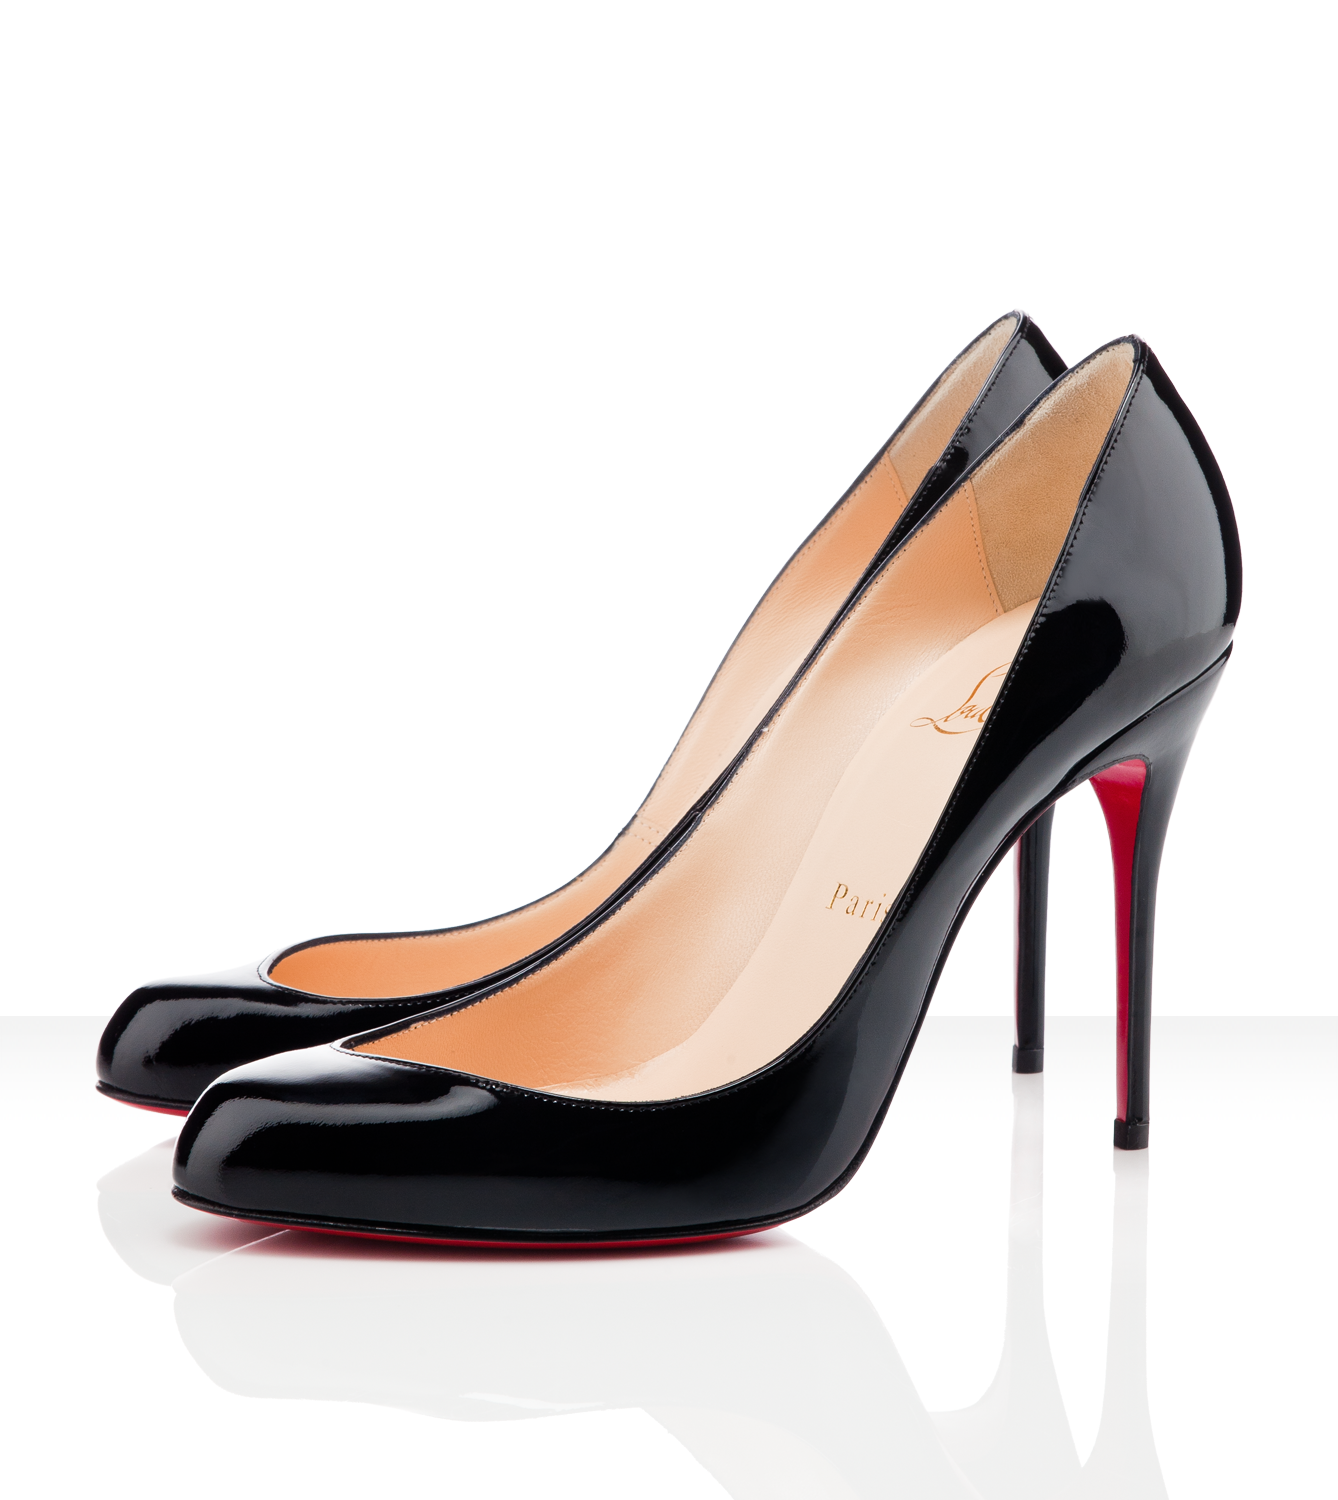 Discount Christian Louboutin Maudissima Patent Leather Pumps no sale : Christian  Louboutin Online Shop! [basic 1 view from side]